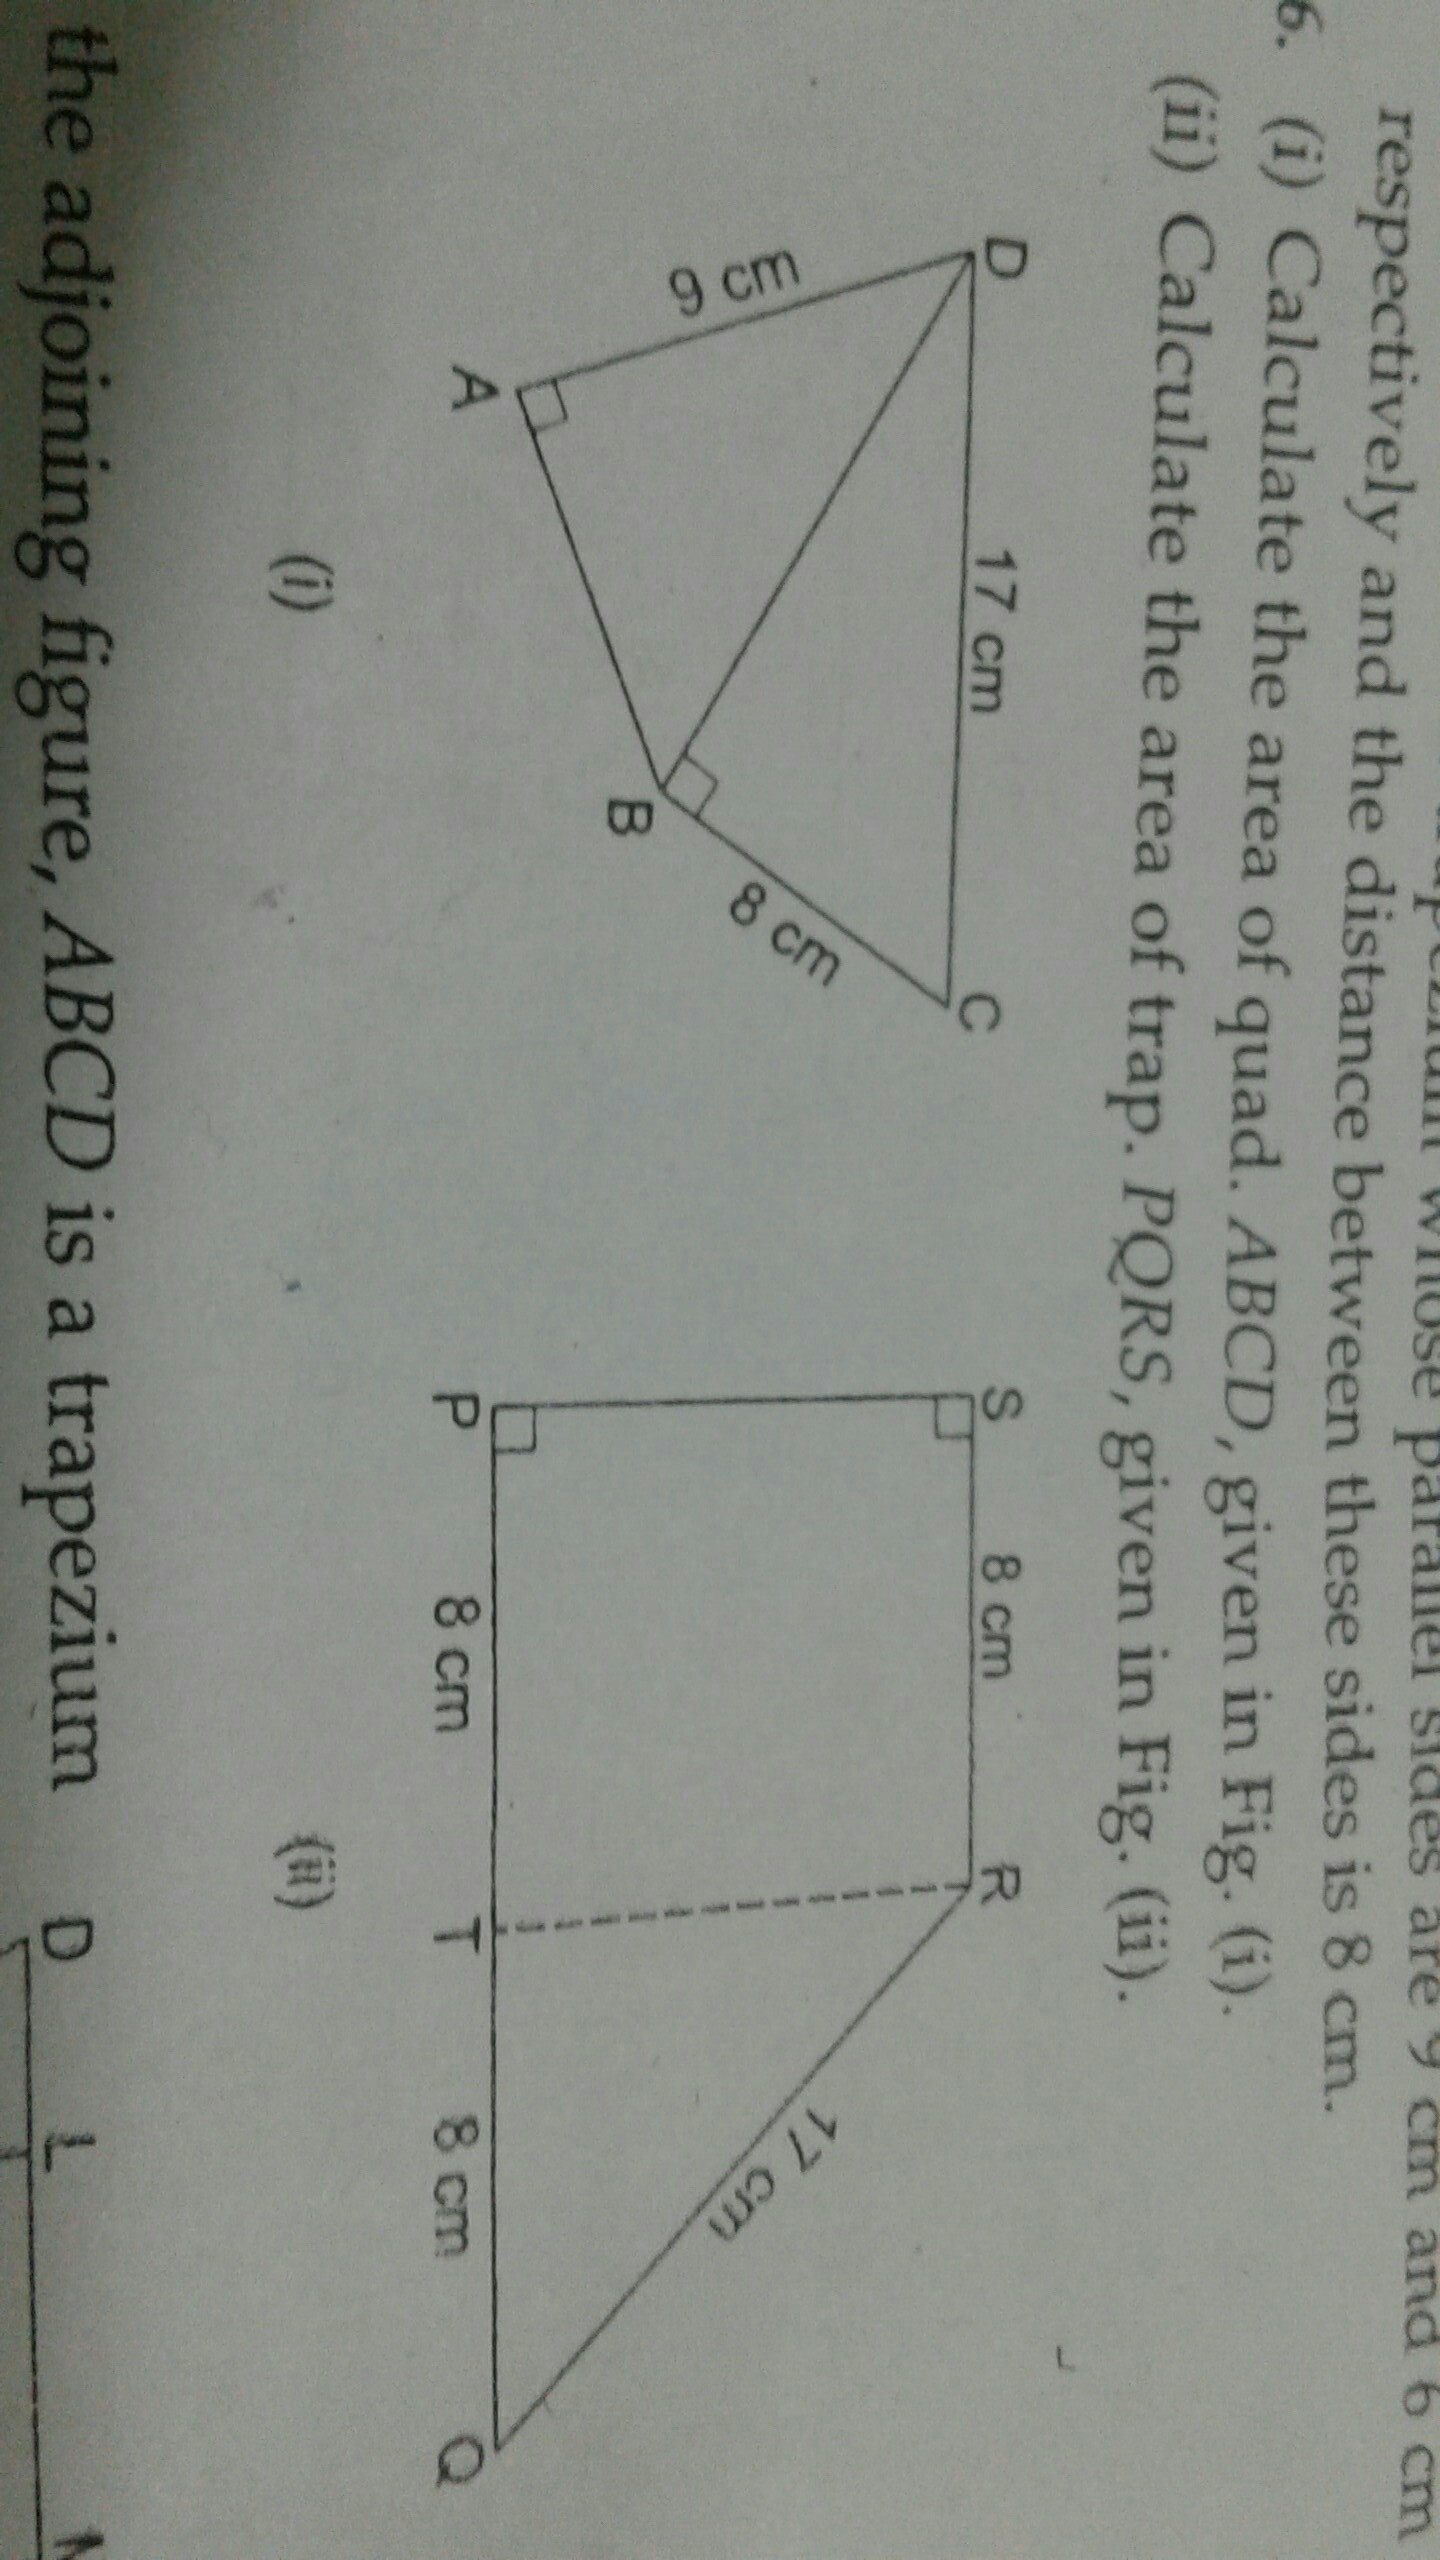 calculate the area of quadrilateral ABCD calculate the area